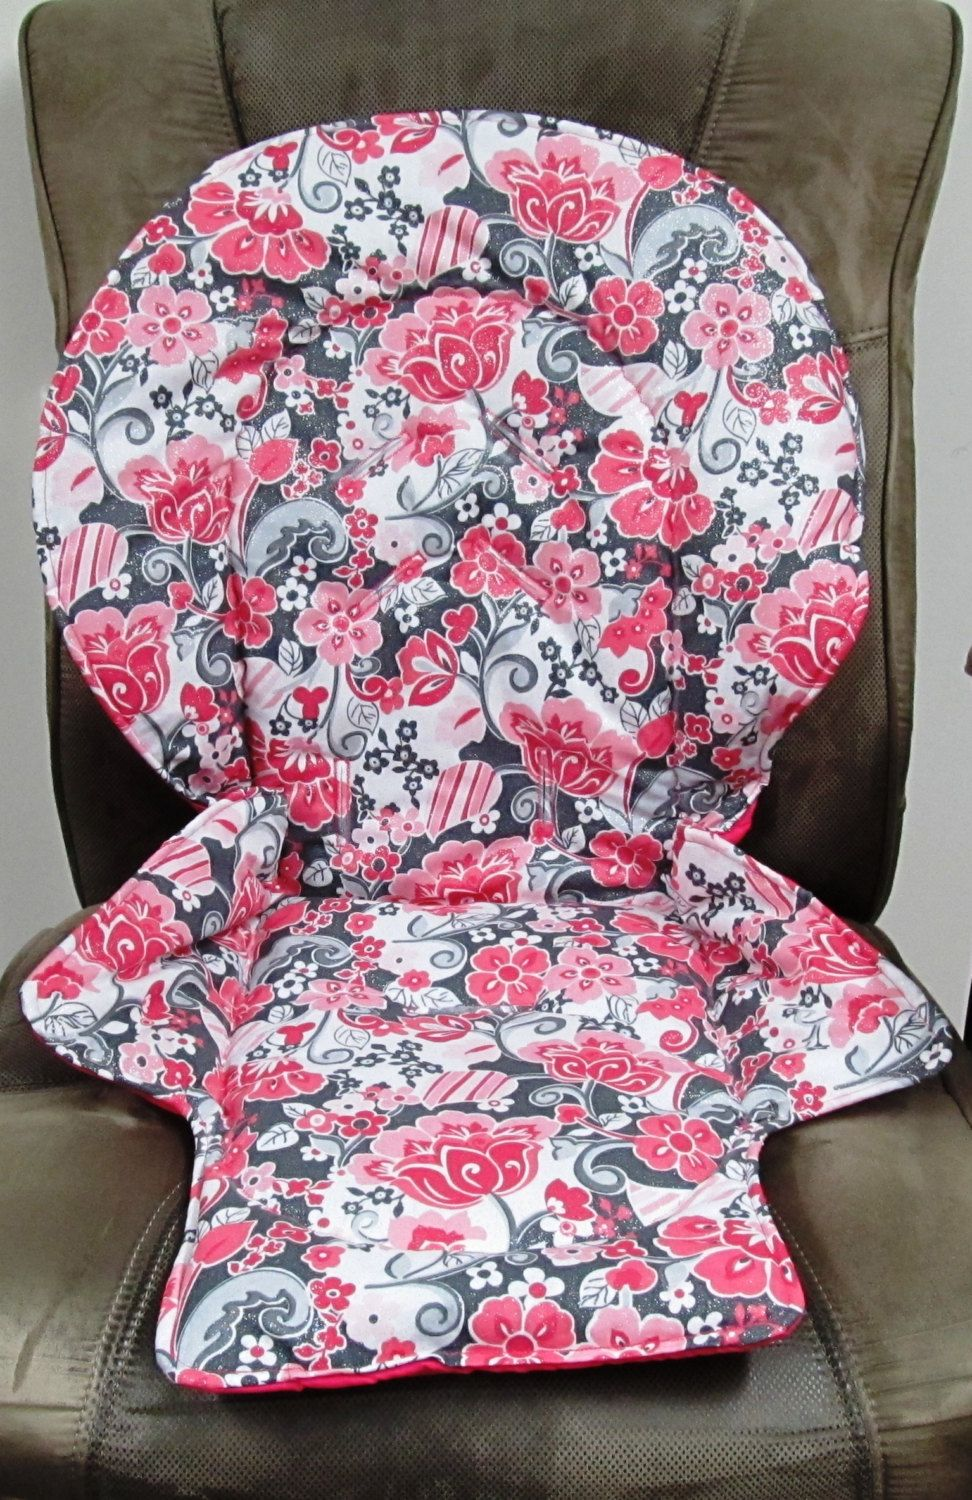 Cushions chair pads and more - Baby Trend Replacement Cover High Chair Pad Baby Accessory Chair Cushion Kids